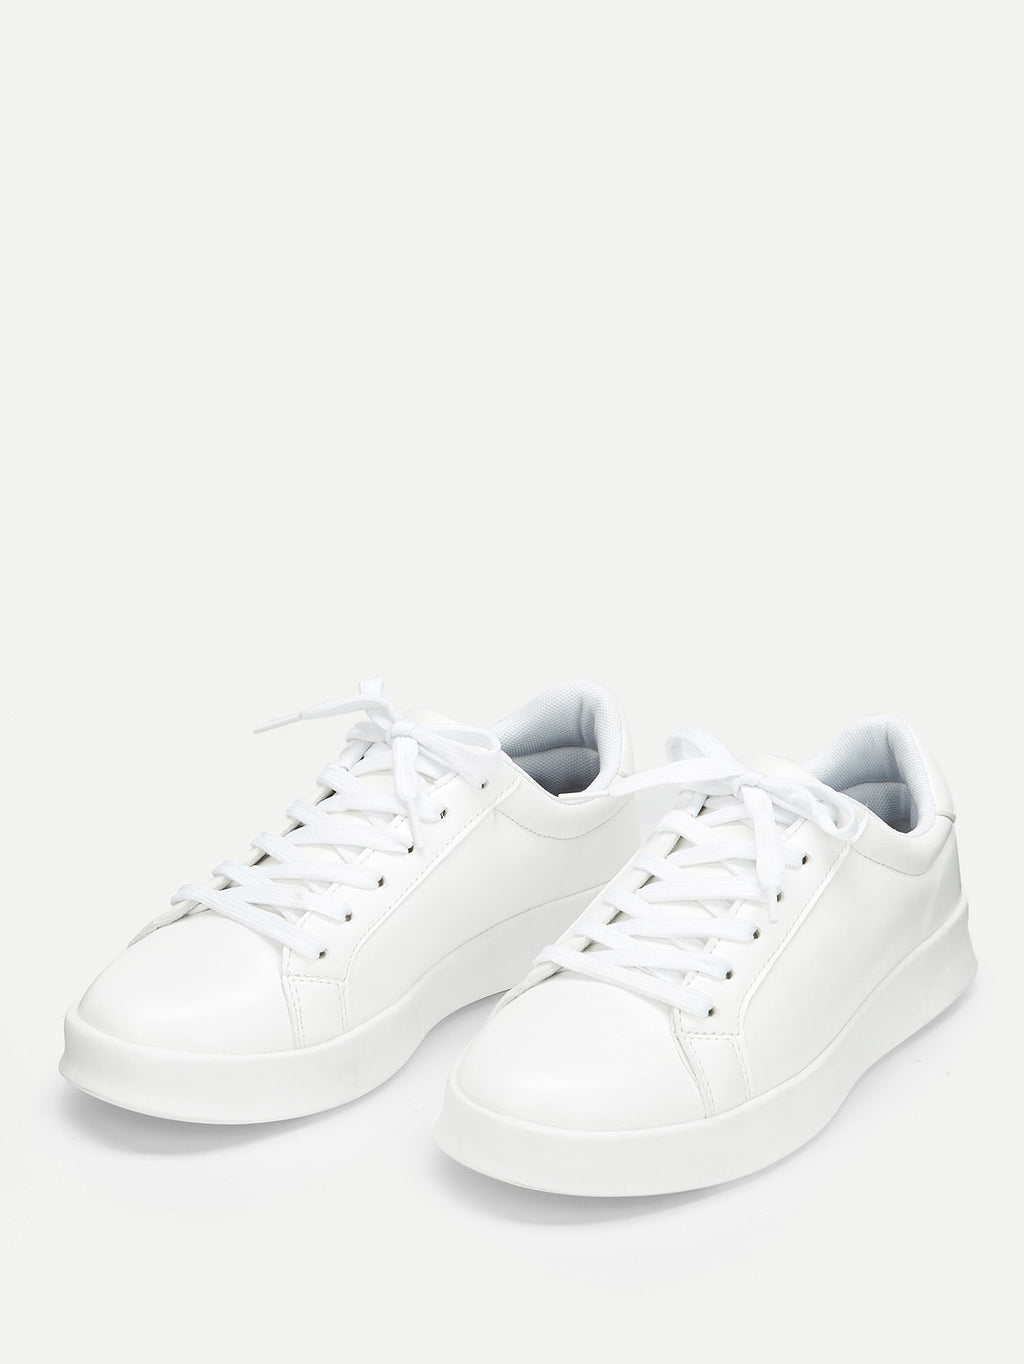 Running Shoes For Men - Solid Low Top Sneakers